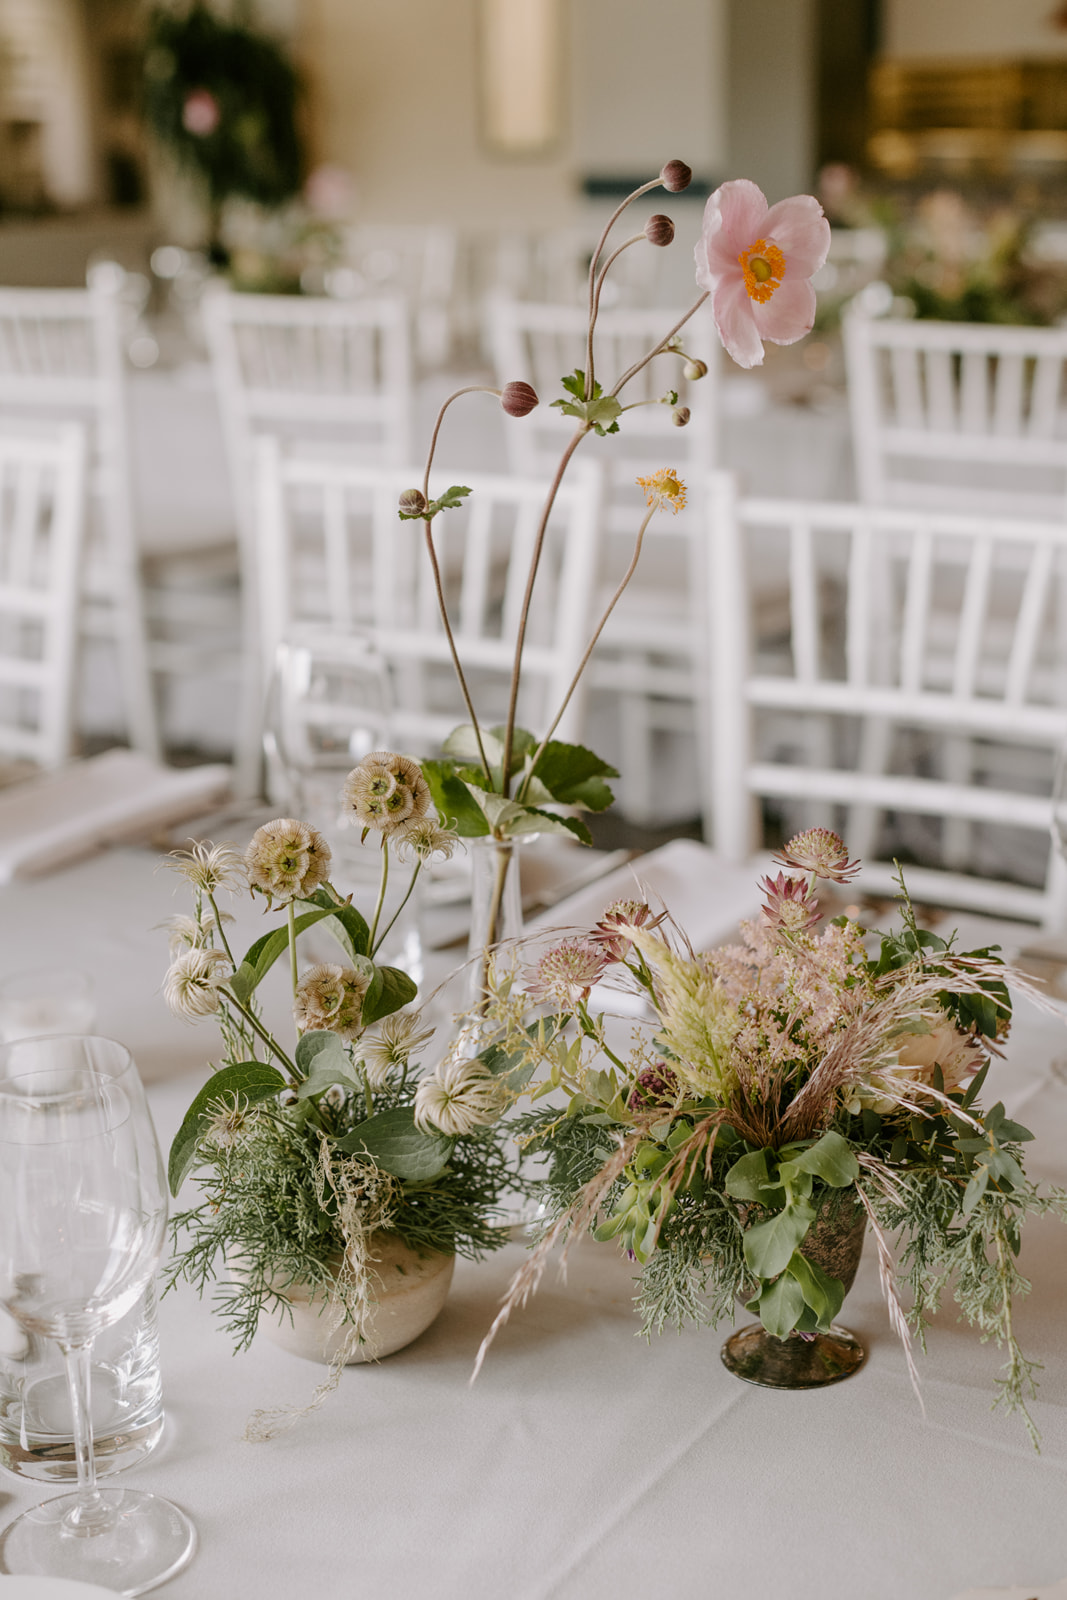 Fine art wedding flowers in light earth tones by Venn Floral photographed by Kristen Marie Parker in Mendocino.